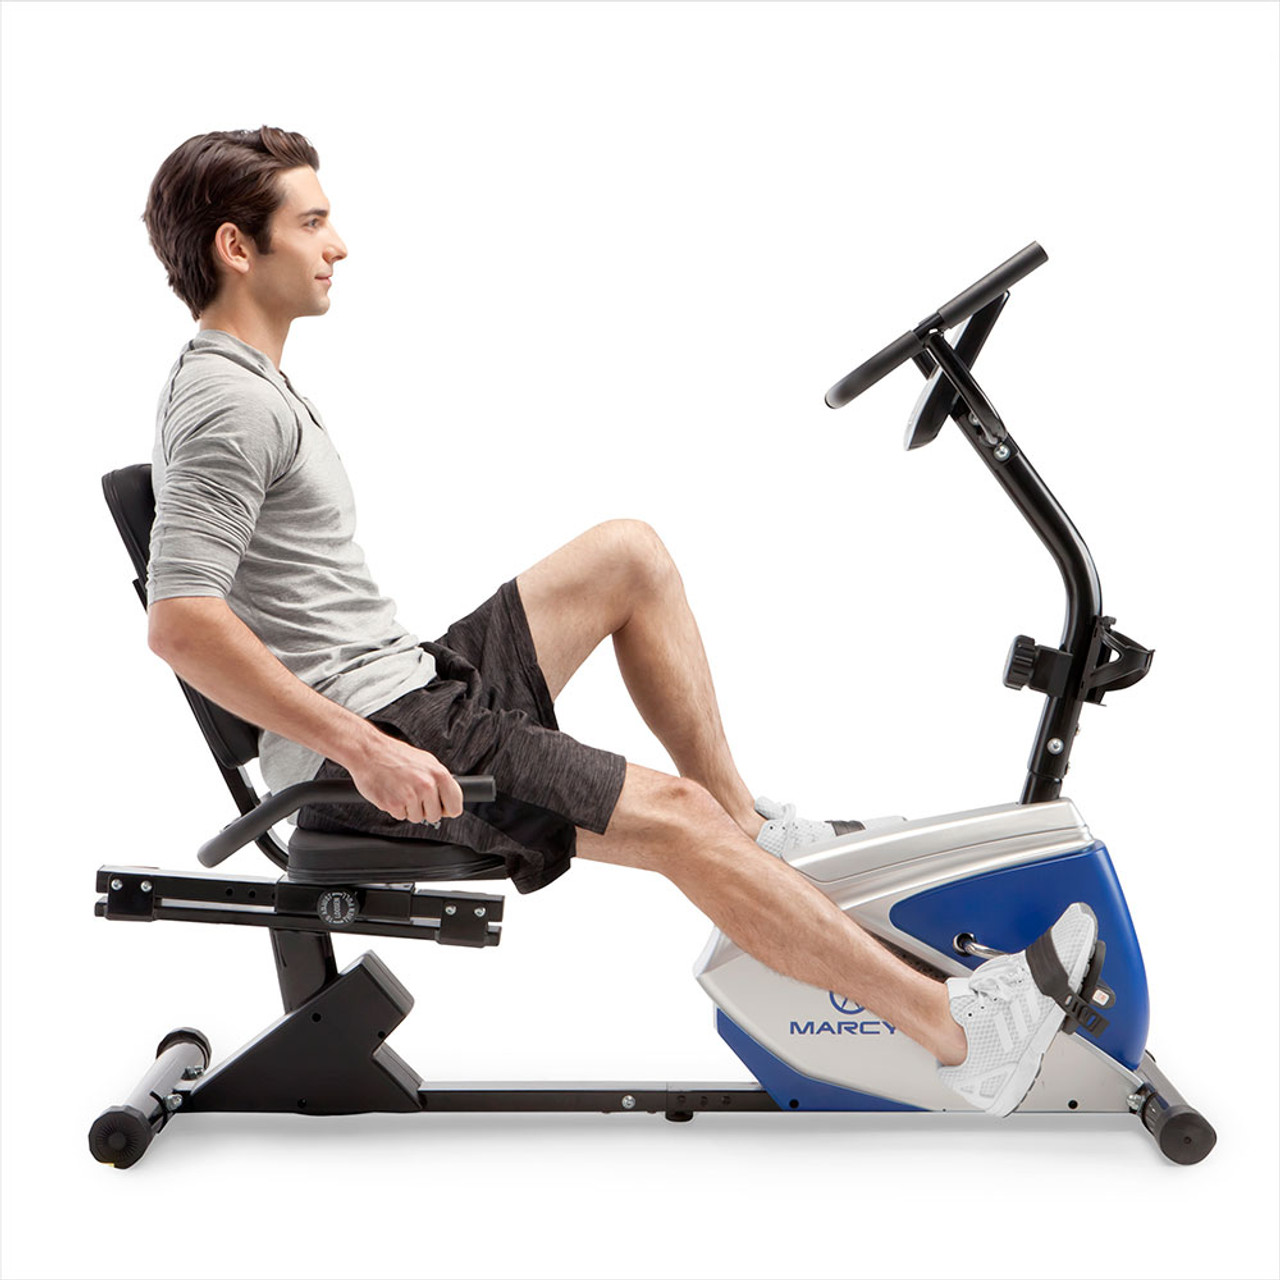 The Marcy Magnetic Recumbent Bike ME-1019R has handles at the seat for your comfort